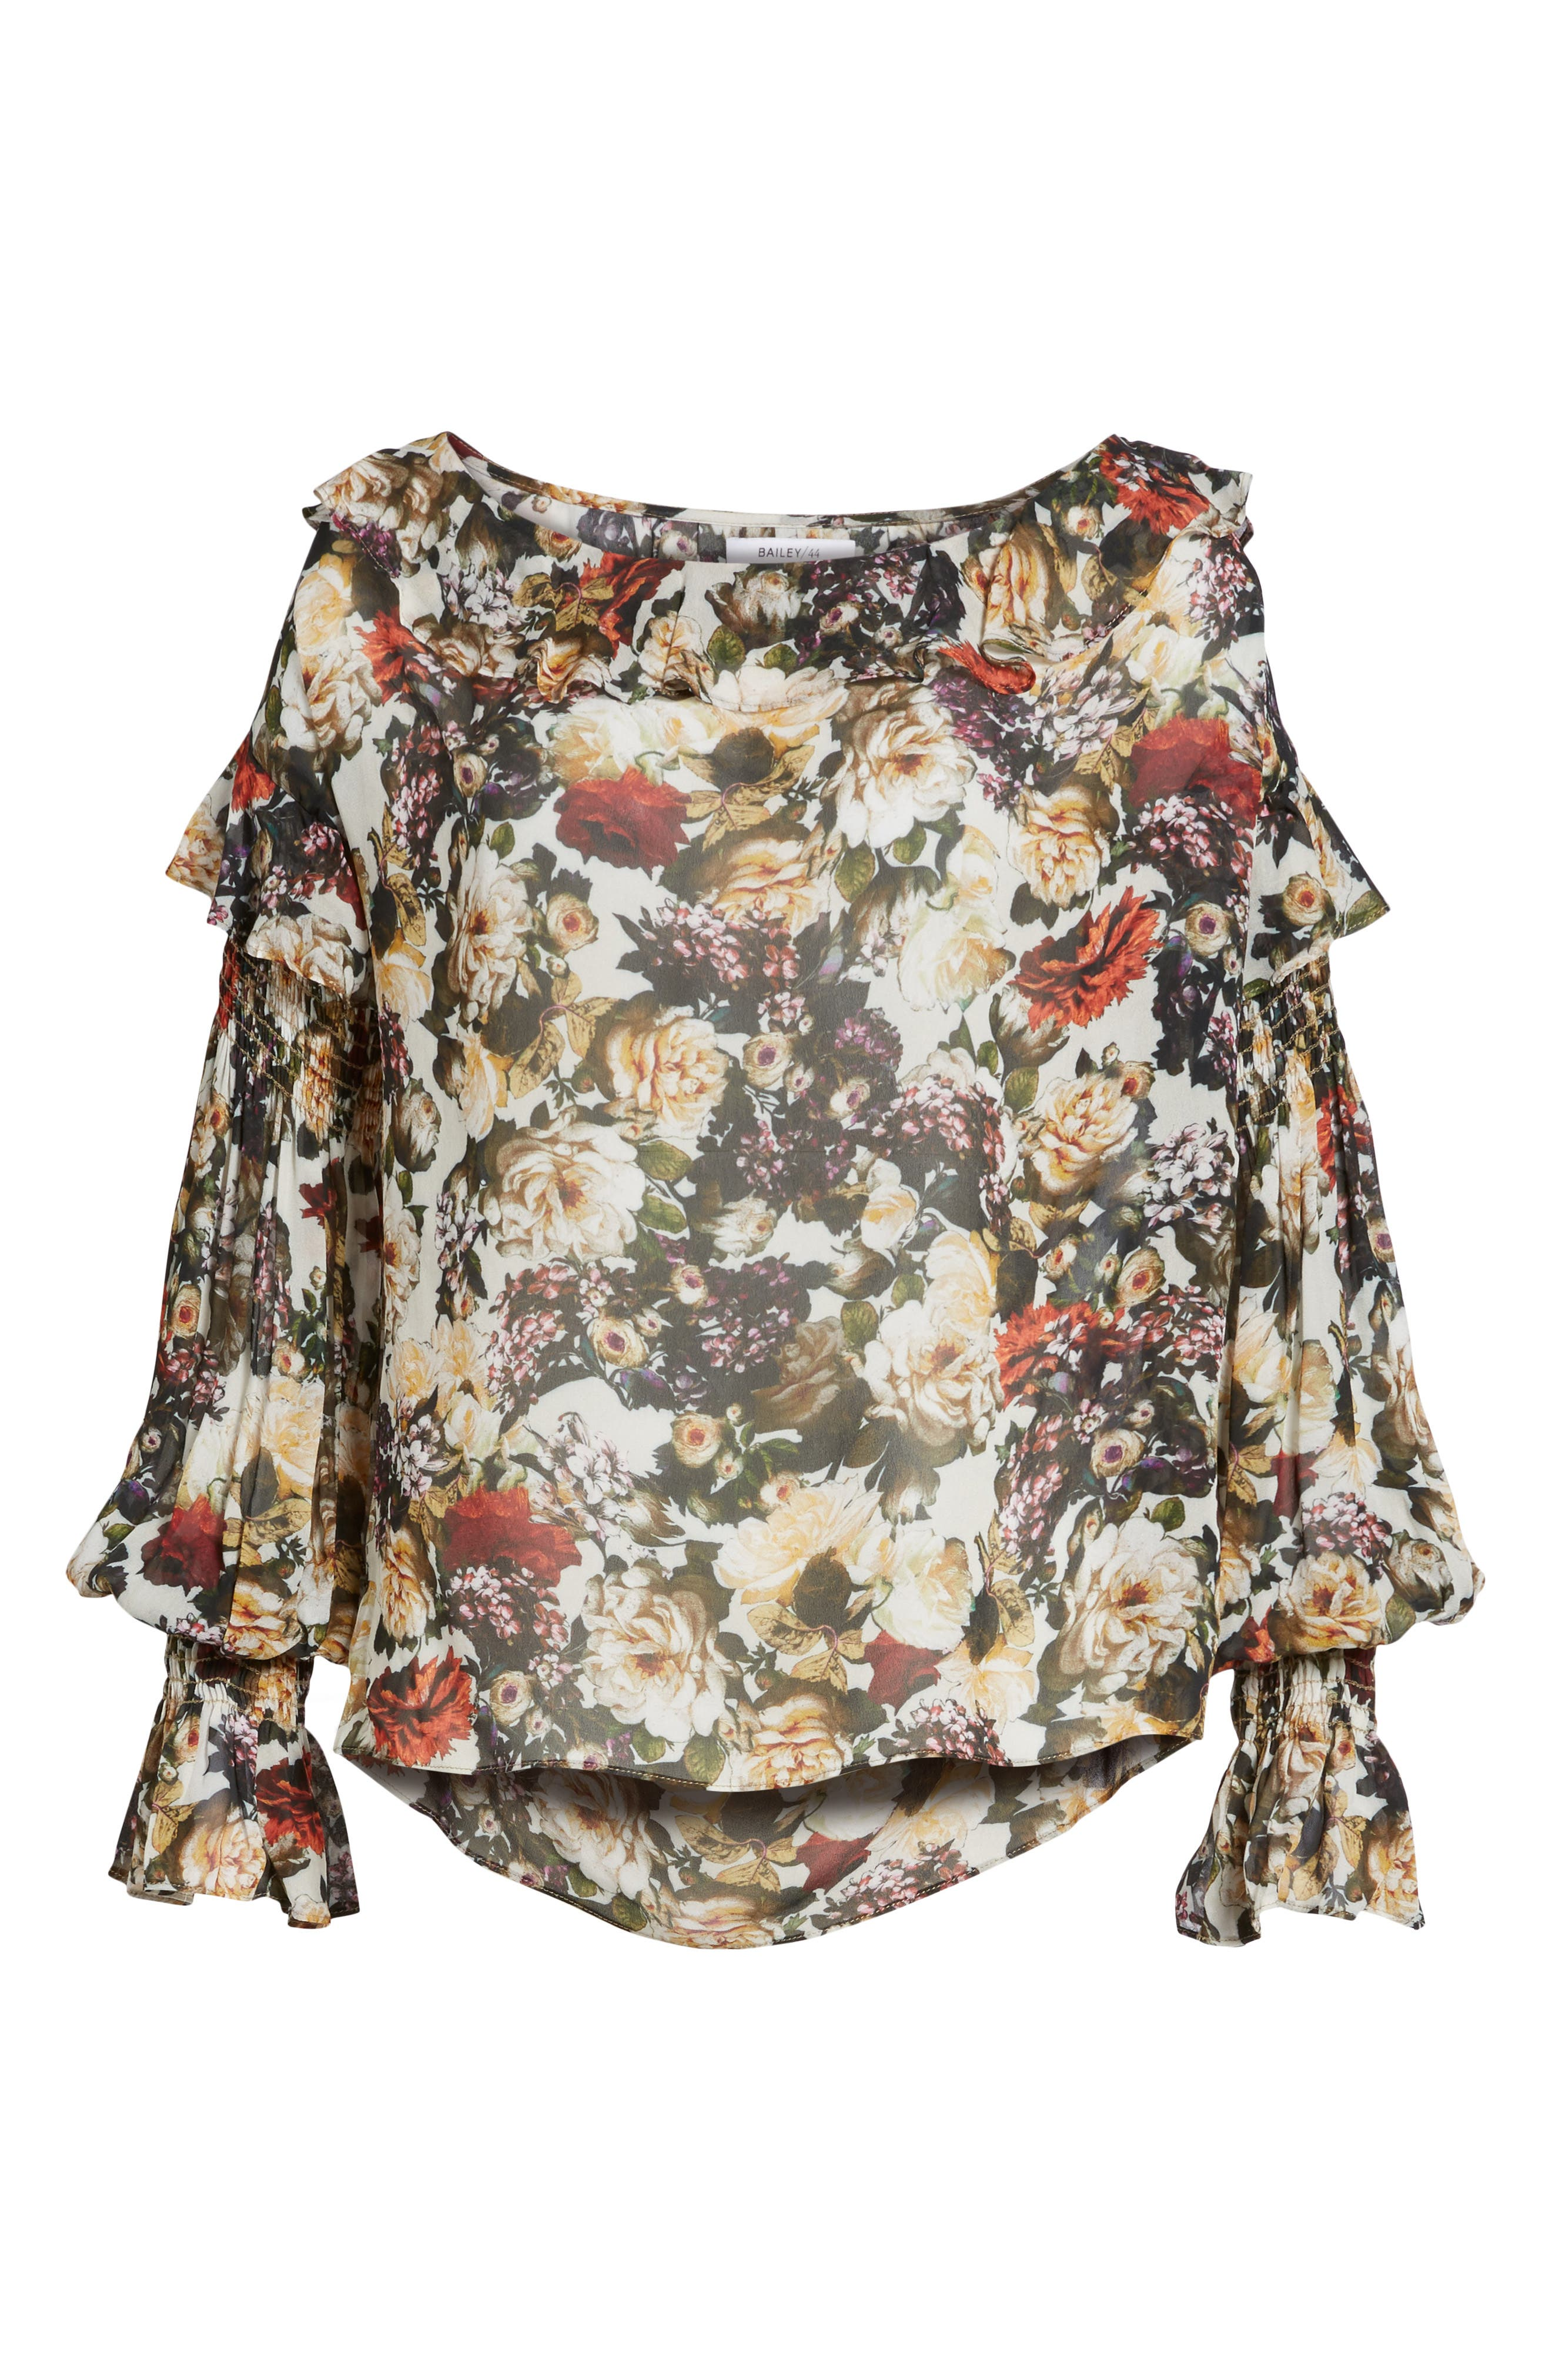 Once Upon a Time Blouse,                             Alternate thumbnail 6, color,                             Floral